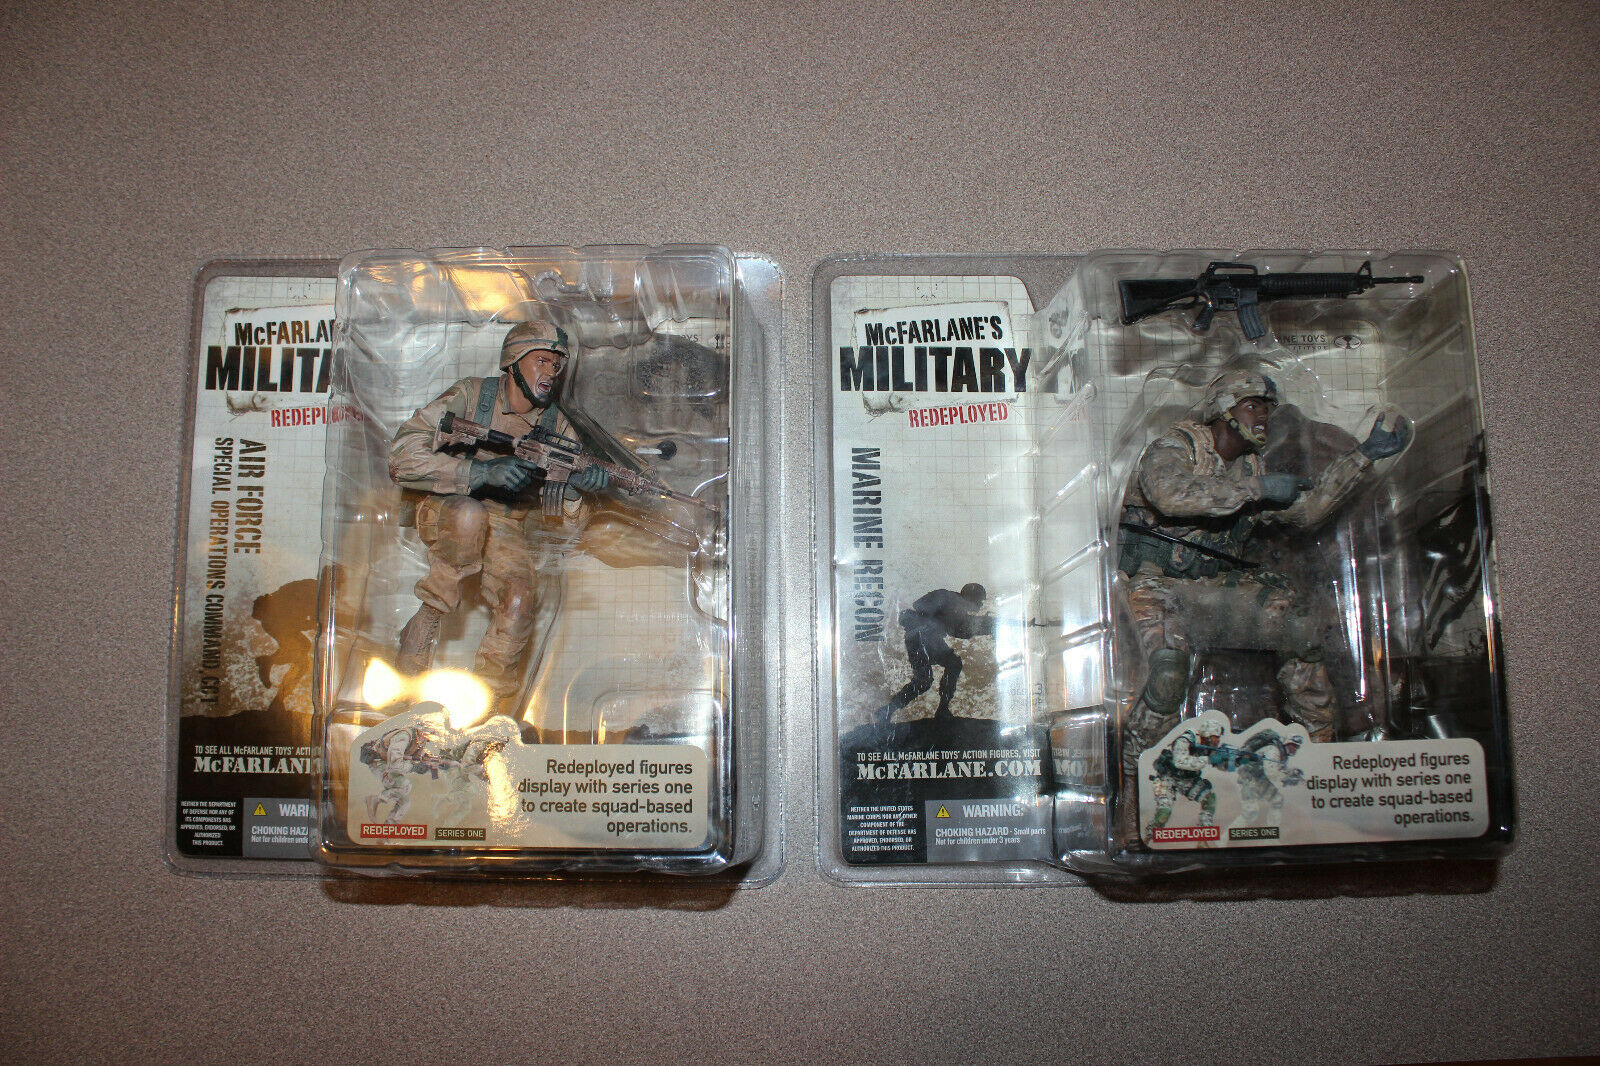 2 McFARLANE Military Figurines Marine Recon & Air Force Special Ops roteployed